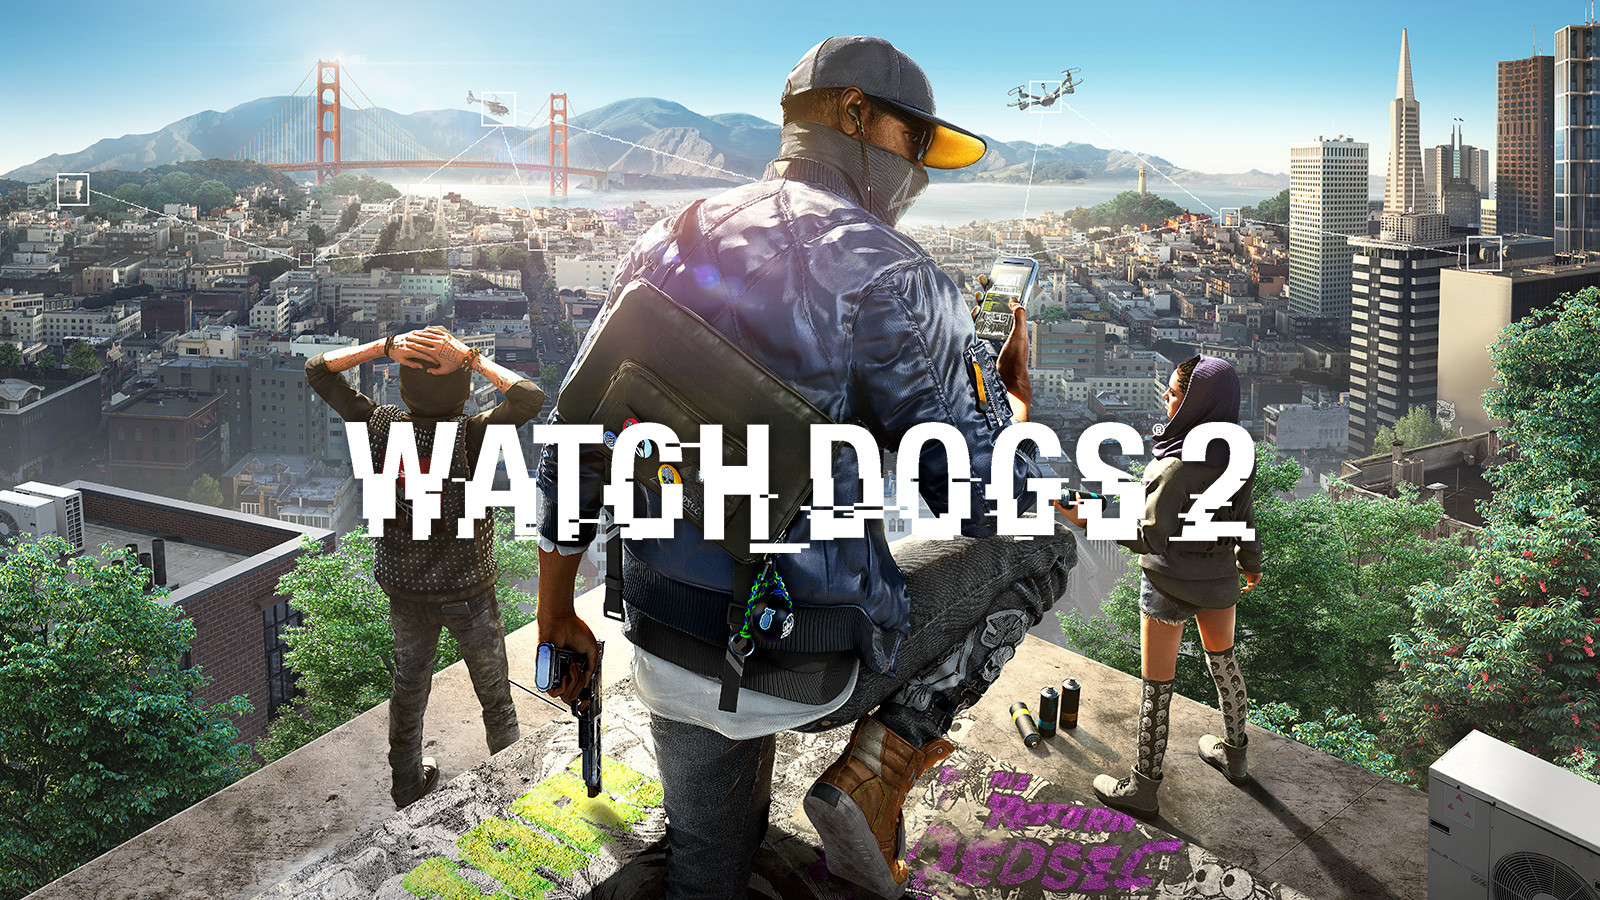 Watch Dogs 2 Wants to Monitor Your System, But You Need Not